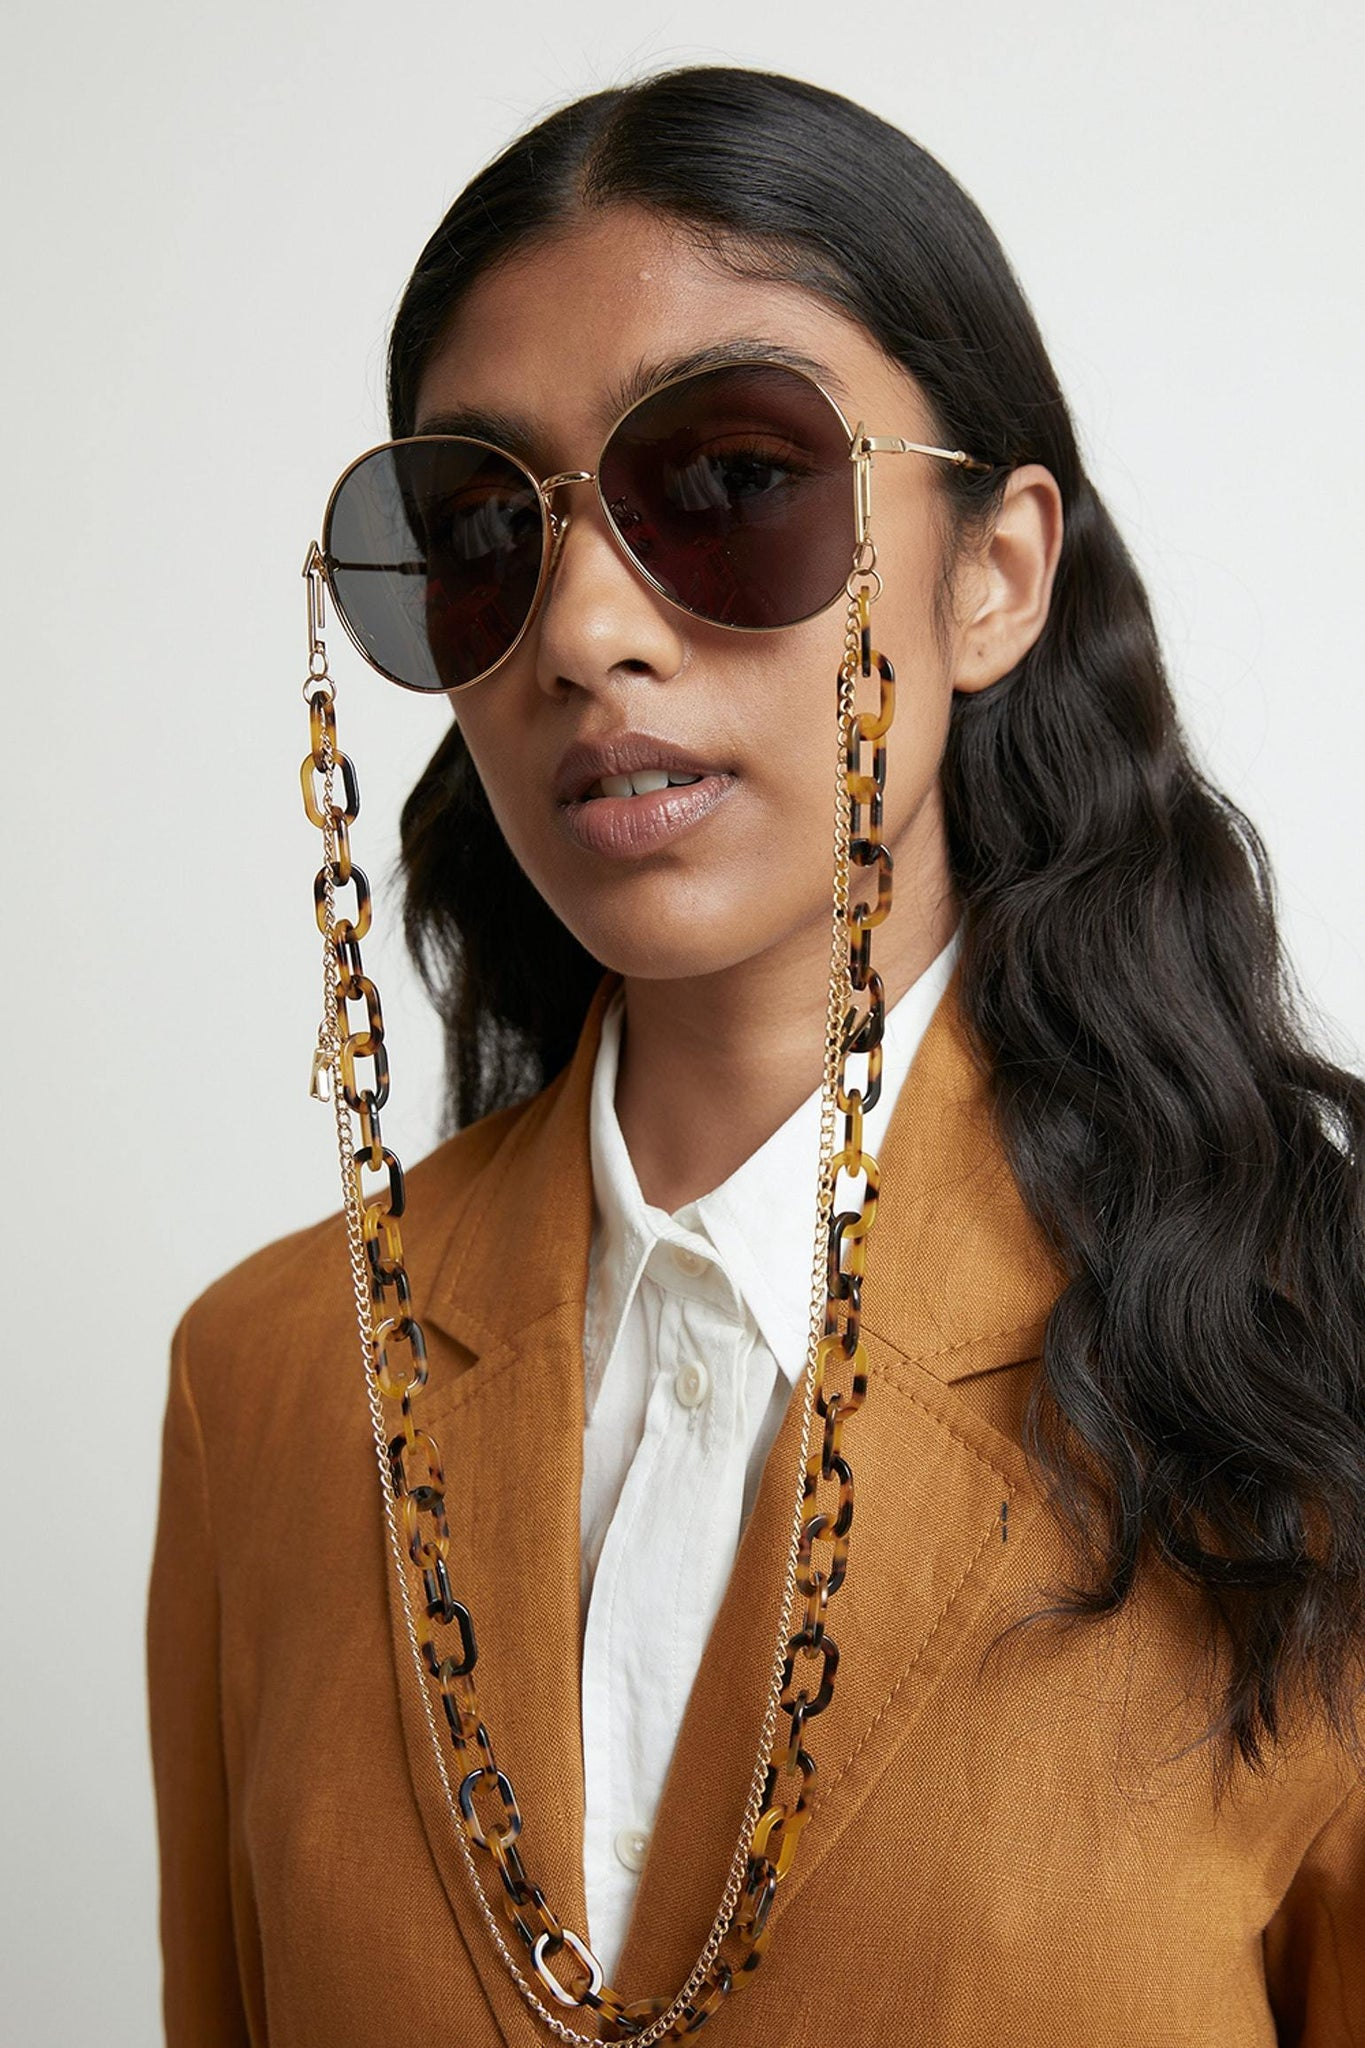 SUNSHADES EYEWEAR NZ ACC CRAZYTRT Karen Walker | Double Eyewear Chain - Crazy Tort